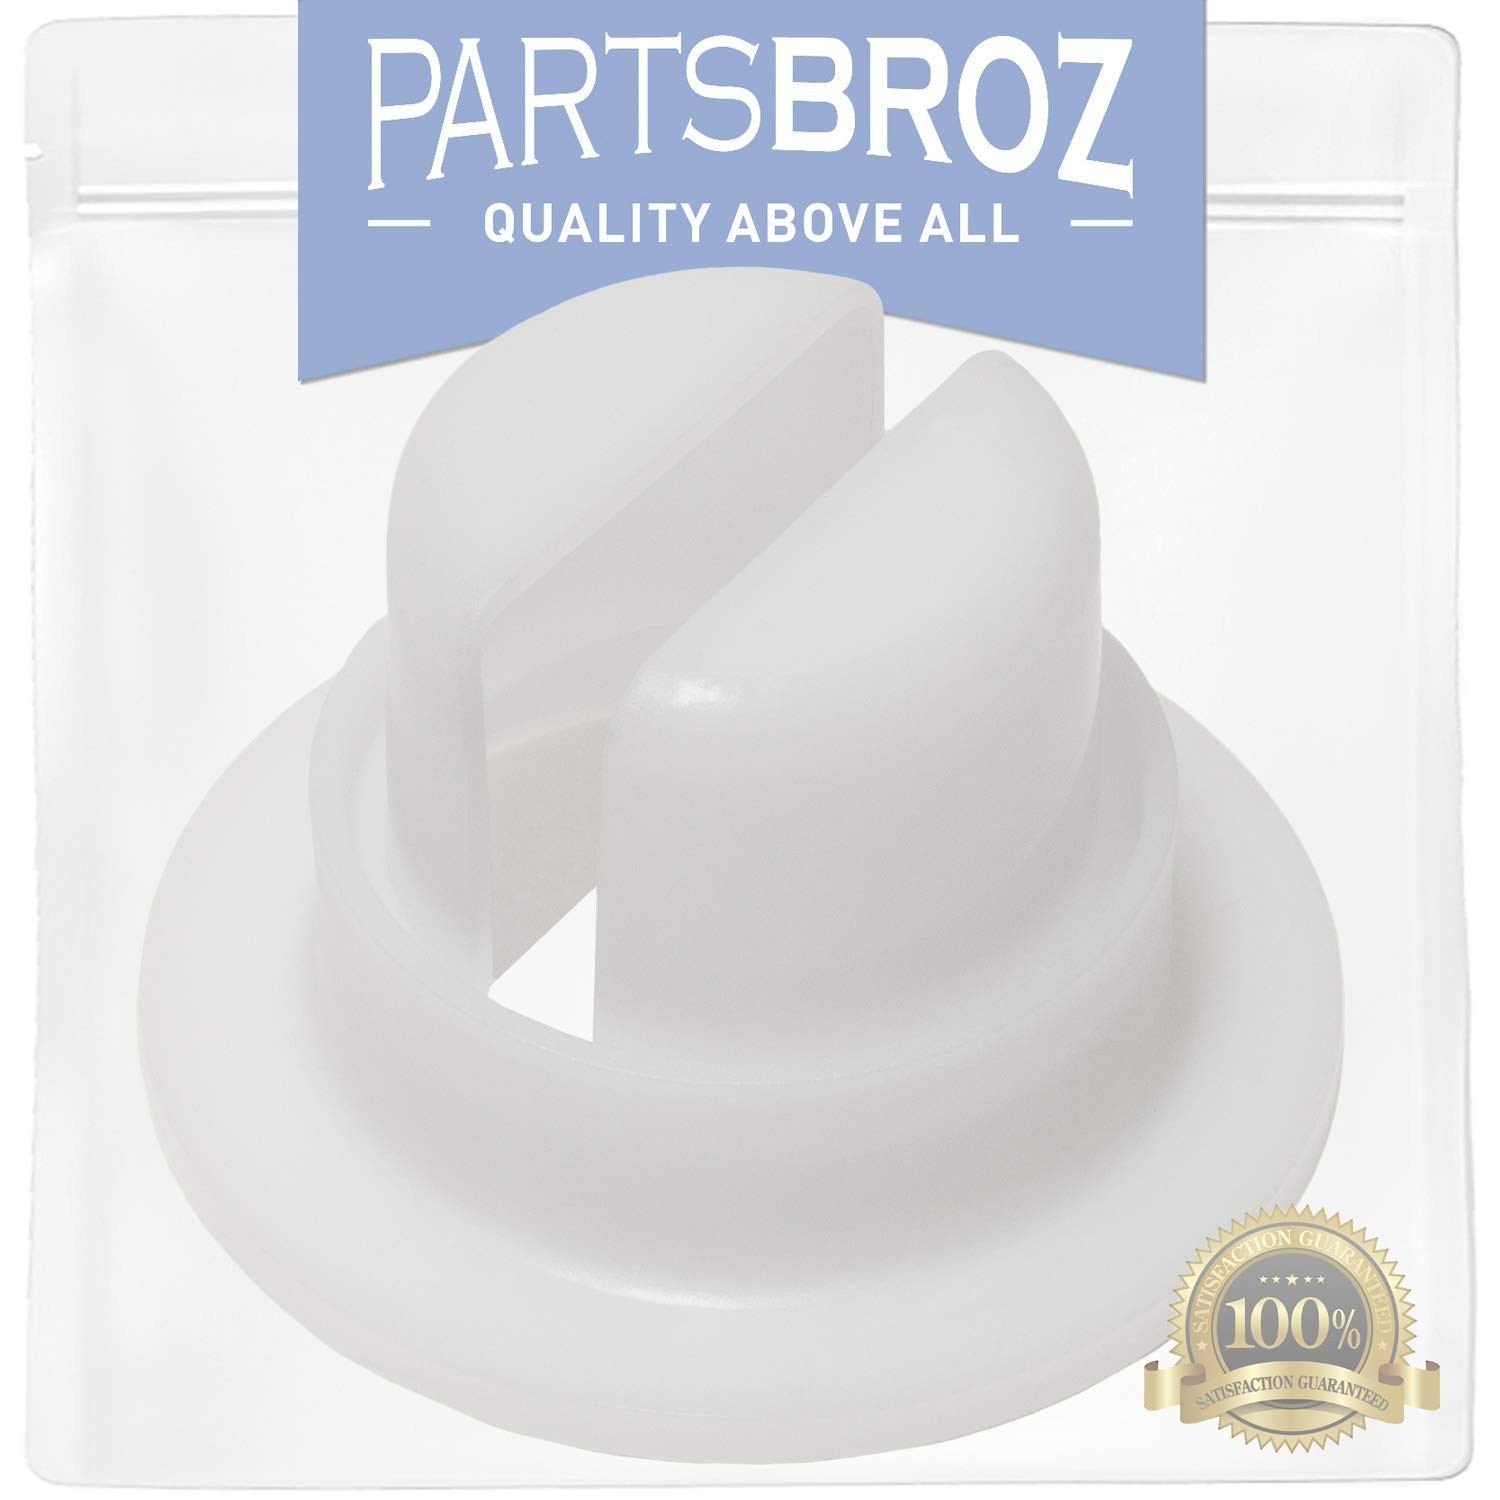 WR17X11459 Drive Cup for GE Refrigerators by PartsBroz - Replaces Part Numbers AP3203248, 1057467 & PS964134